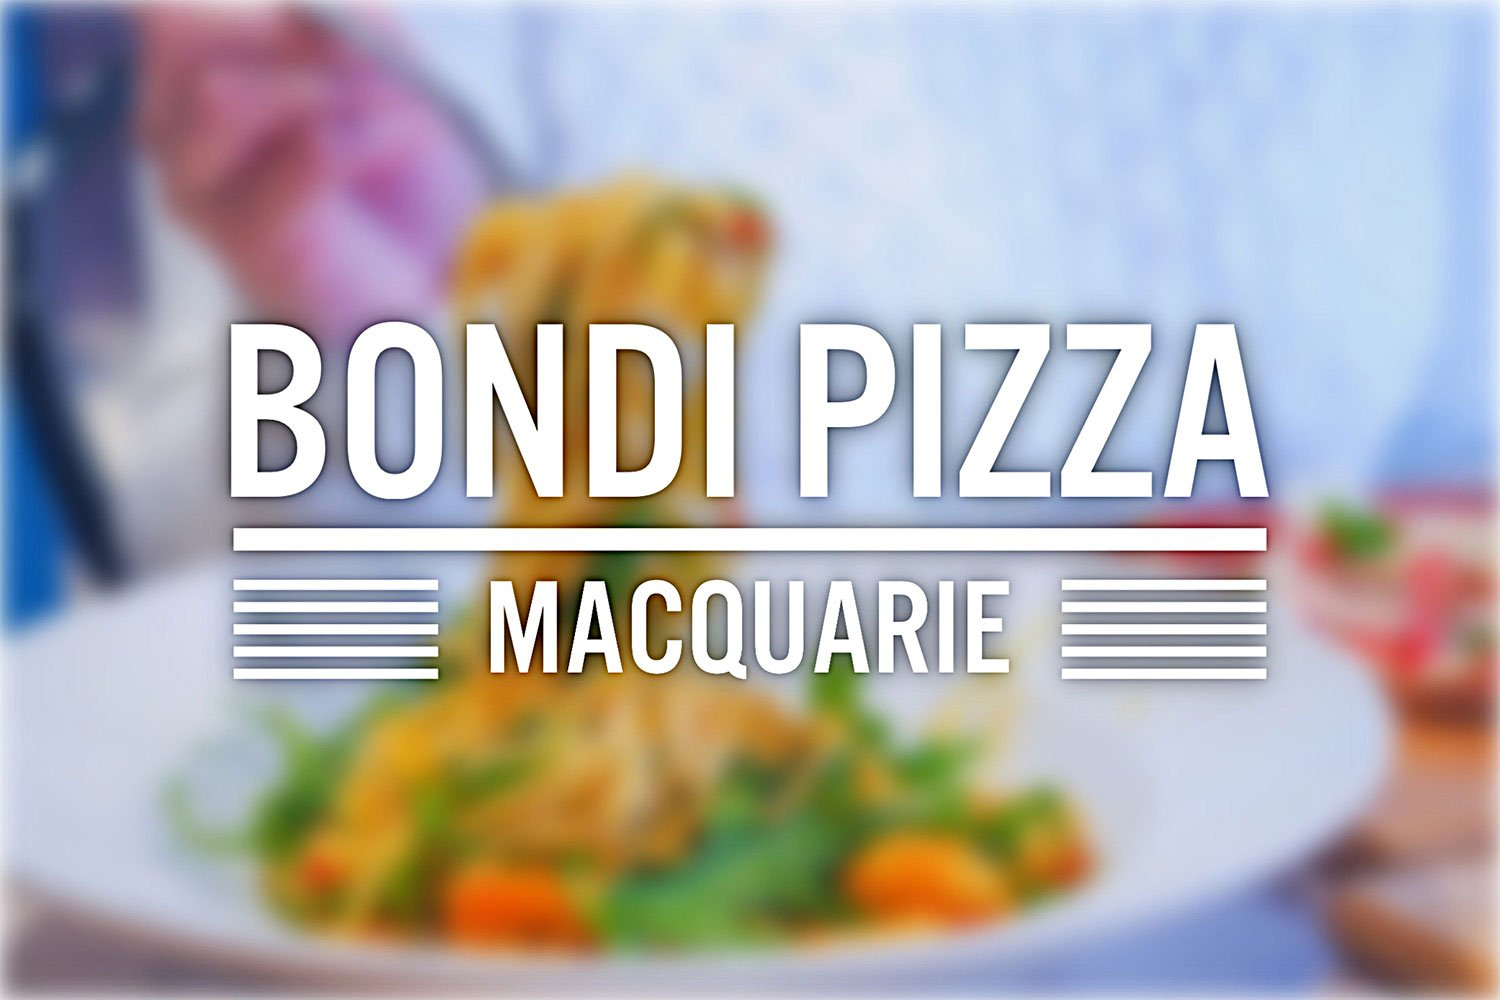 Sydney Food Blog Review of Bondi Pizza, Macquarie